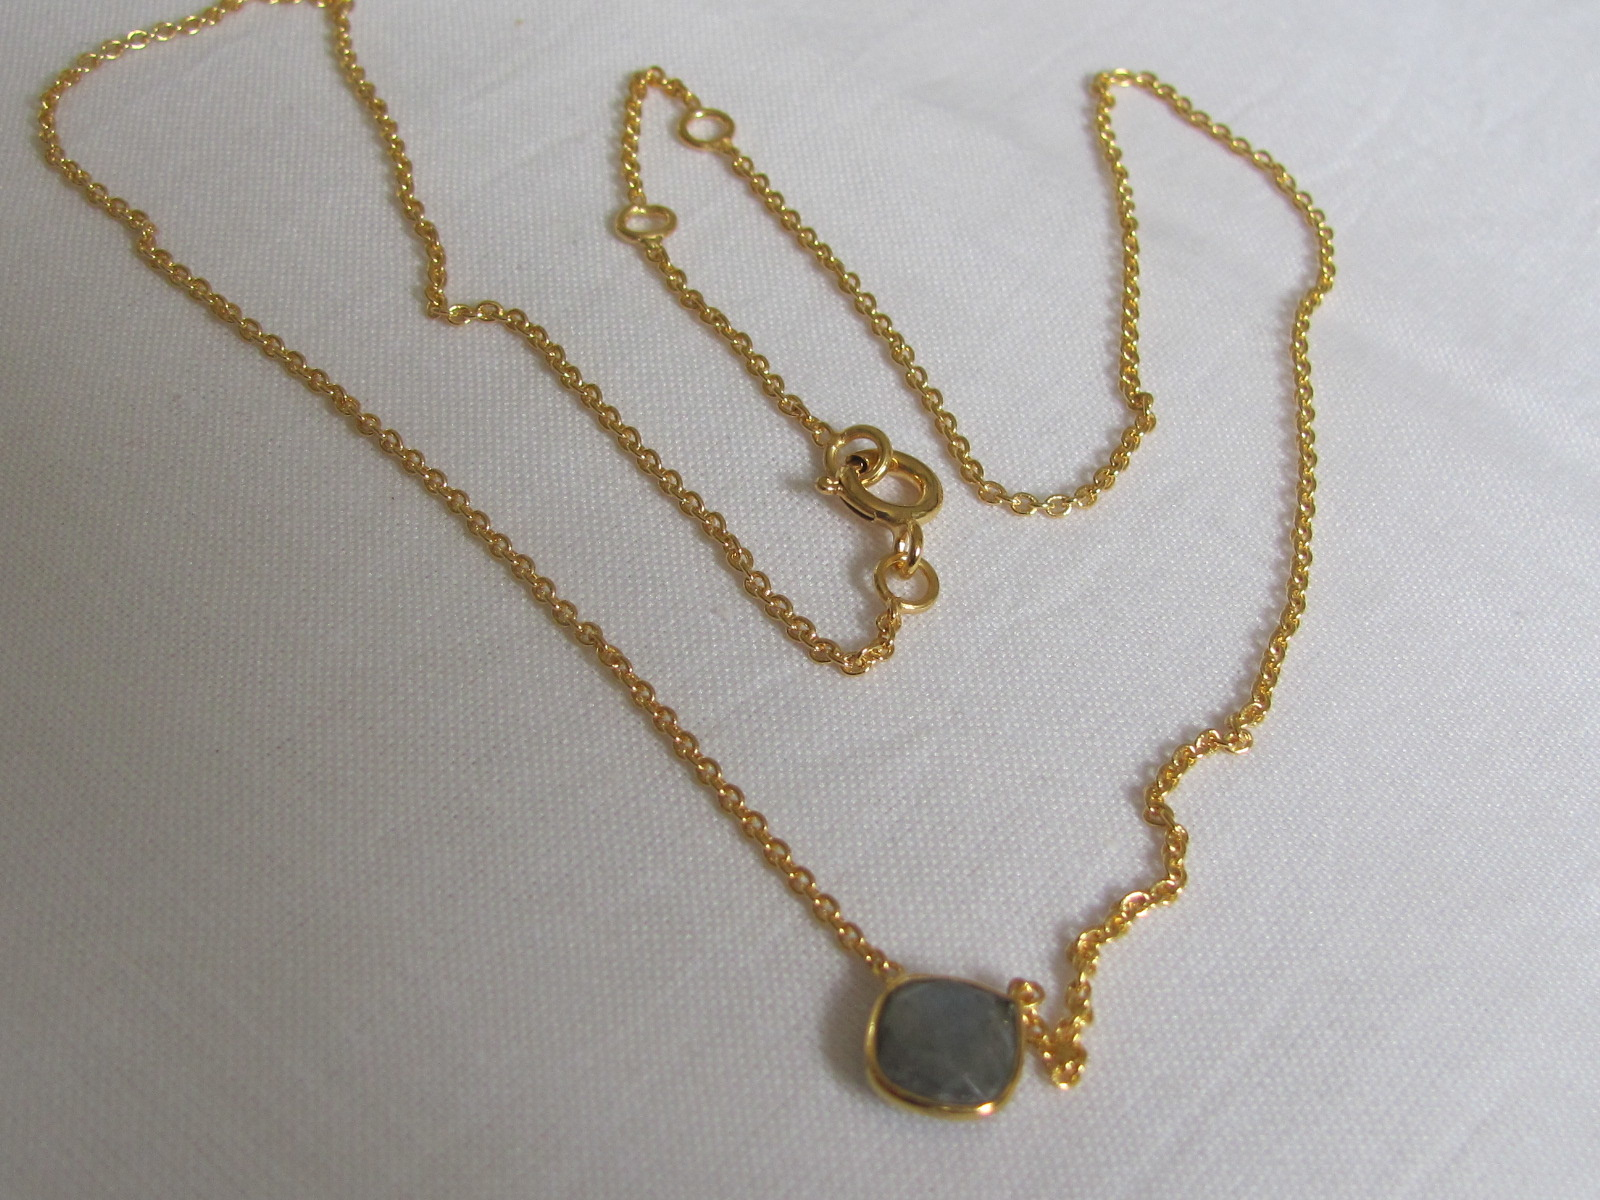 Necklace gold on silver with labradorite